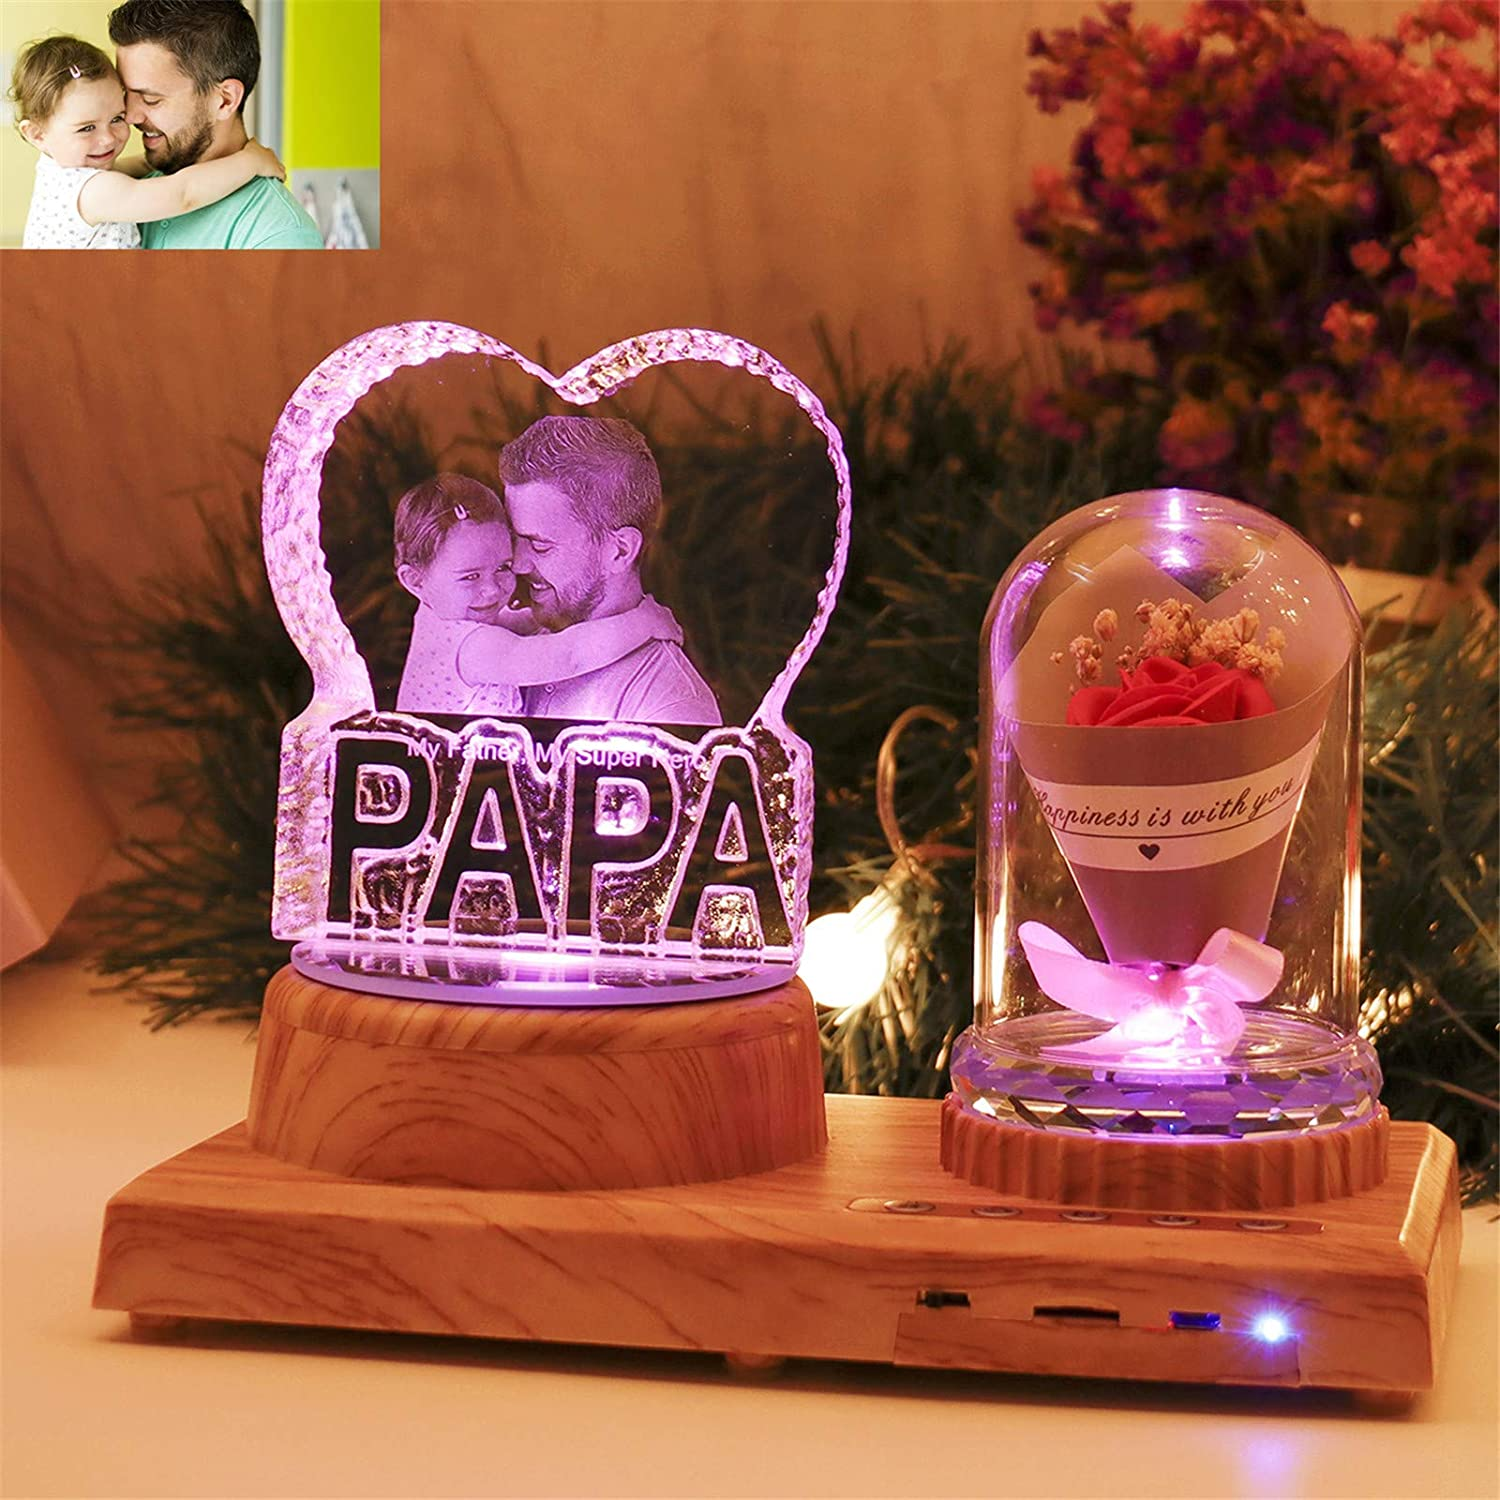 Personalized PAPA Night Light 3D Crystal Lamp Custom Photo Picture Engraved Led Light 7 Color with Bluetooth Rose Wood Base Personalized Gift for Women PAPA Christmas Decoration